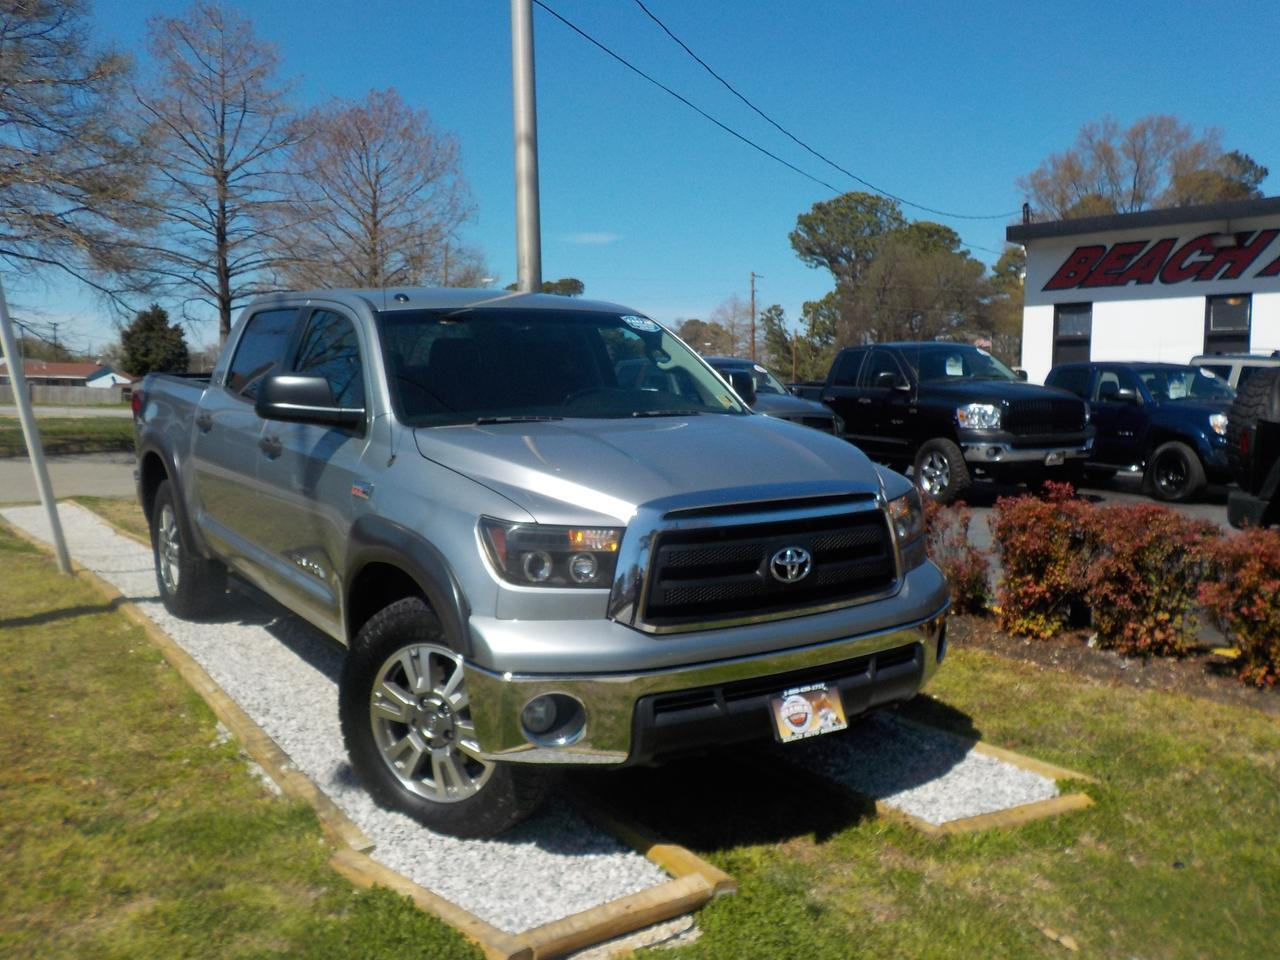 2010 TOYOTA TUNDRA SR5 CREWMAX 4X4, WARRANTY, TOW PKG, PARKING SENSORS, SAT RADIO, THEFT RECOVERY, BED LINER,AUX PORT!